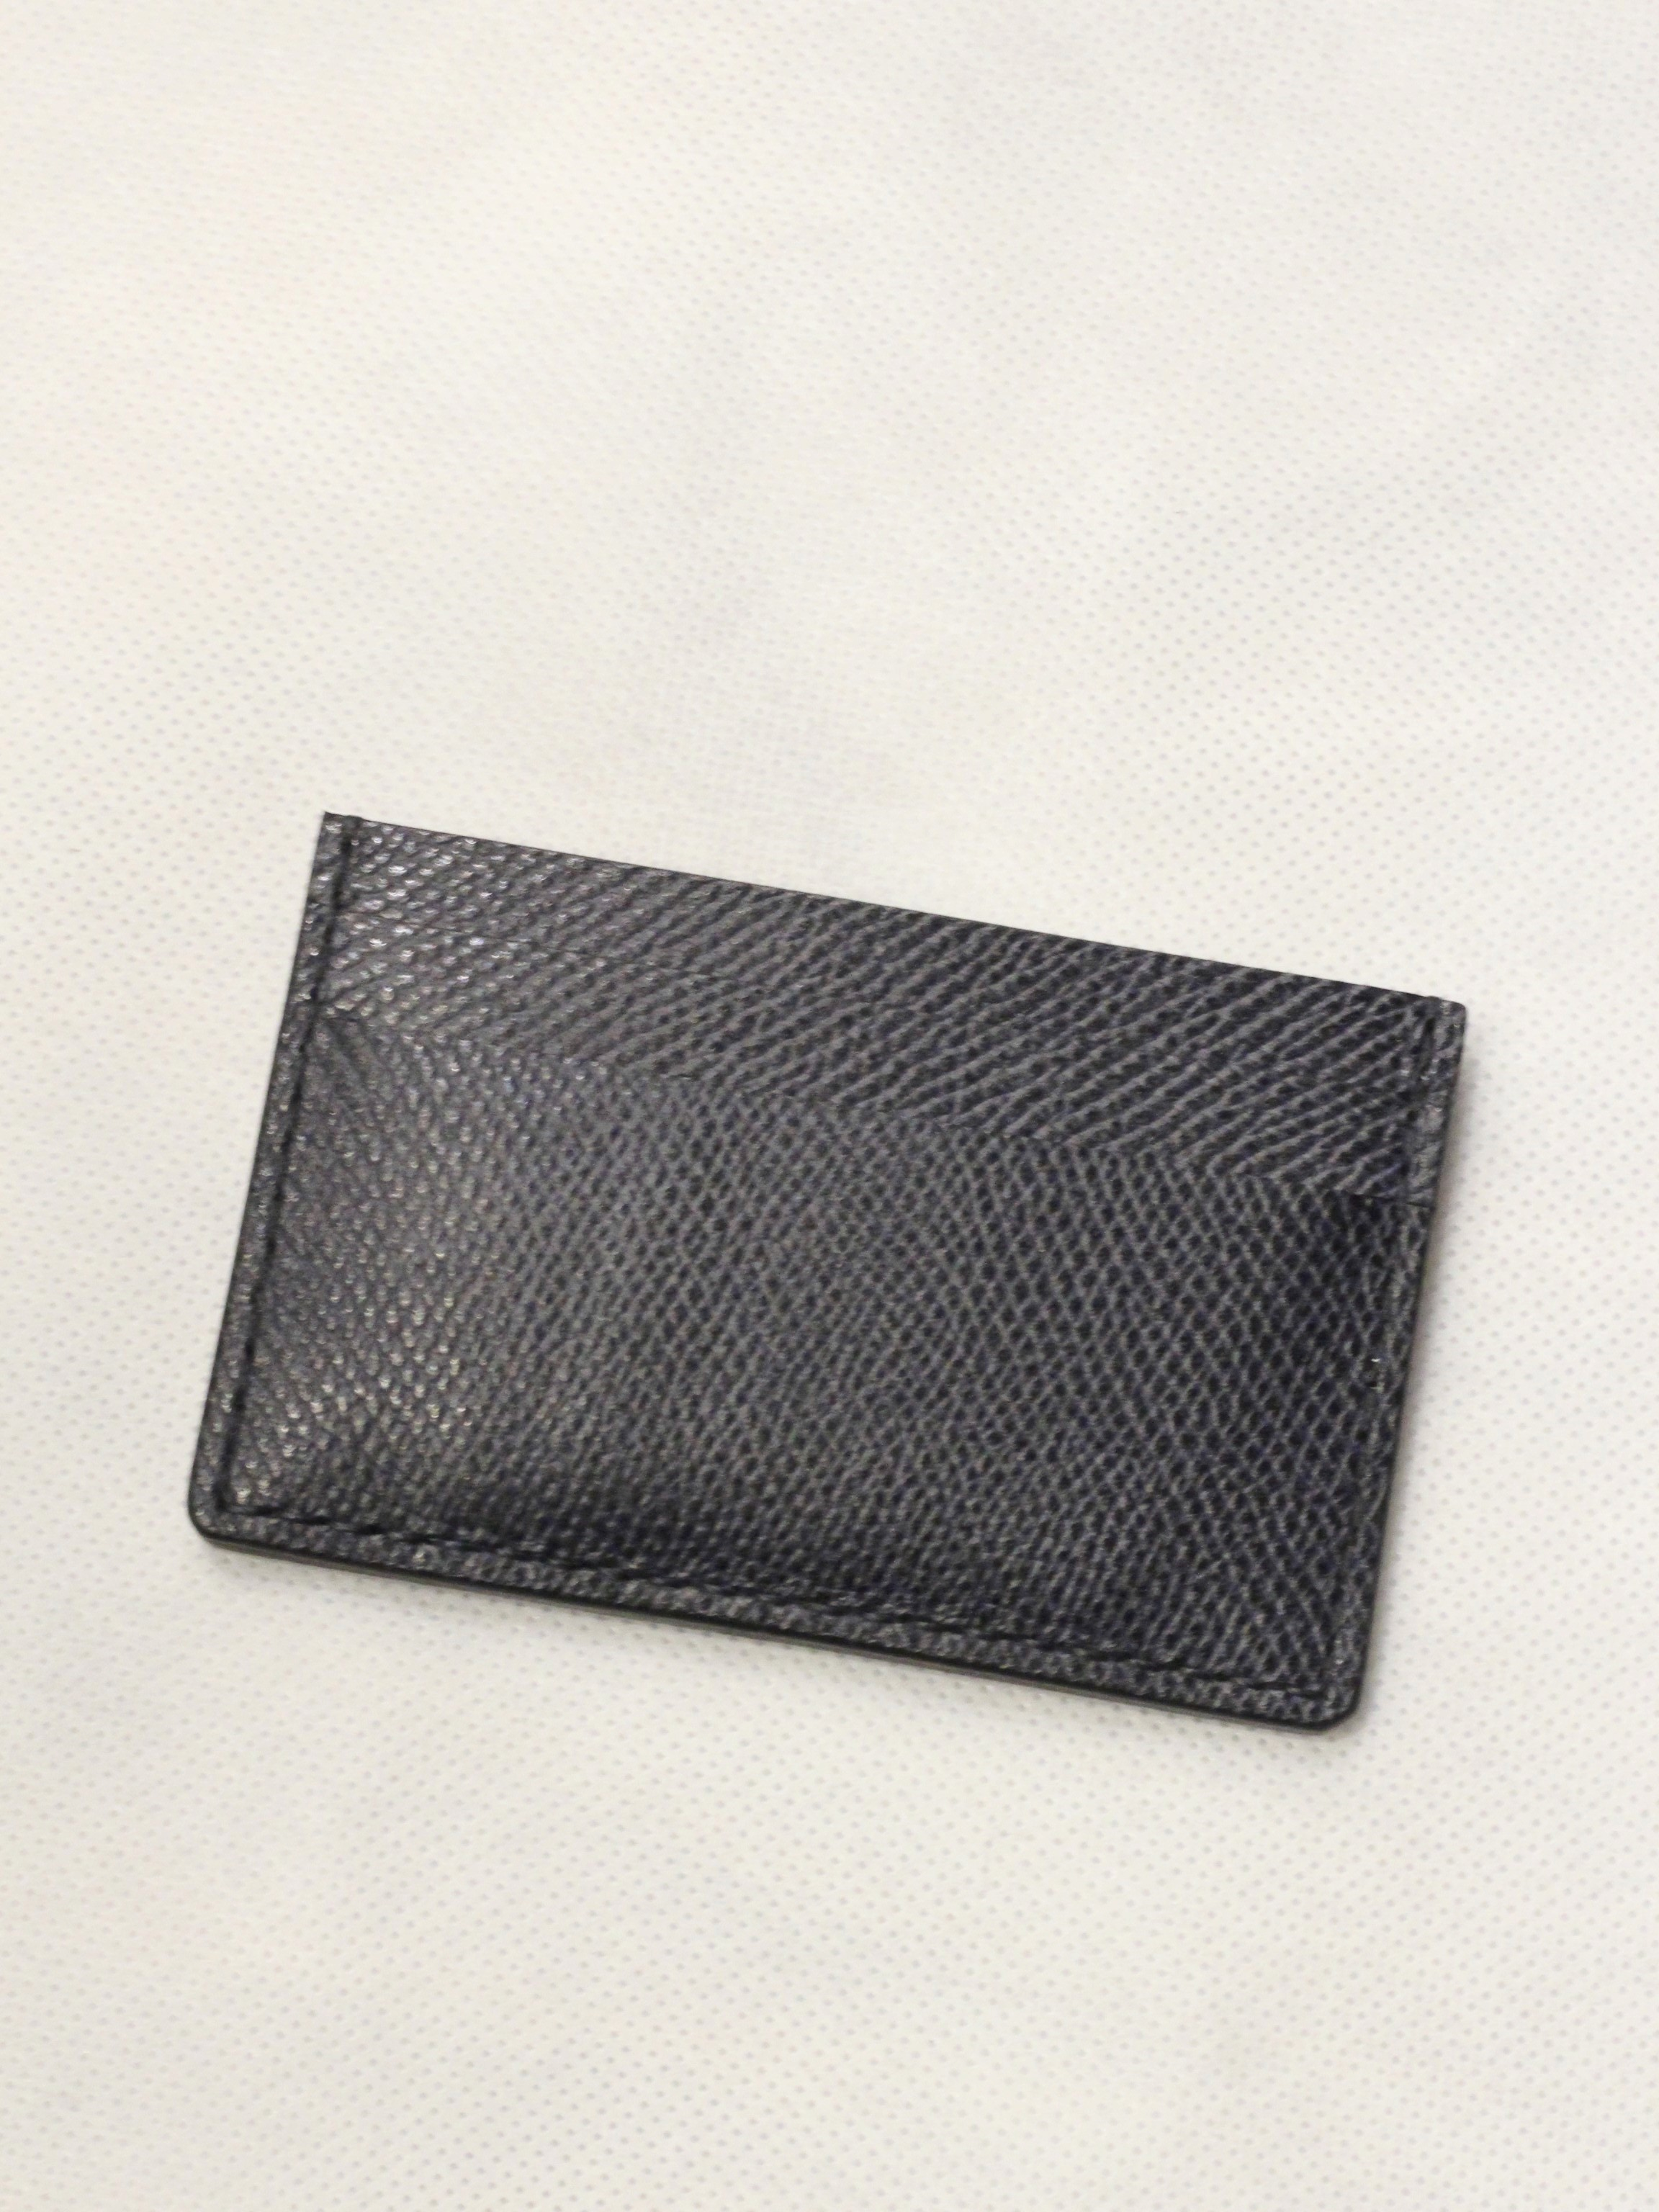 DEXTER   「Leather Card Case」 レザーカードケース